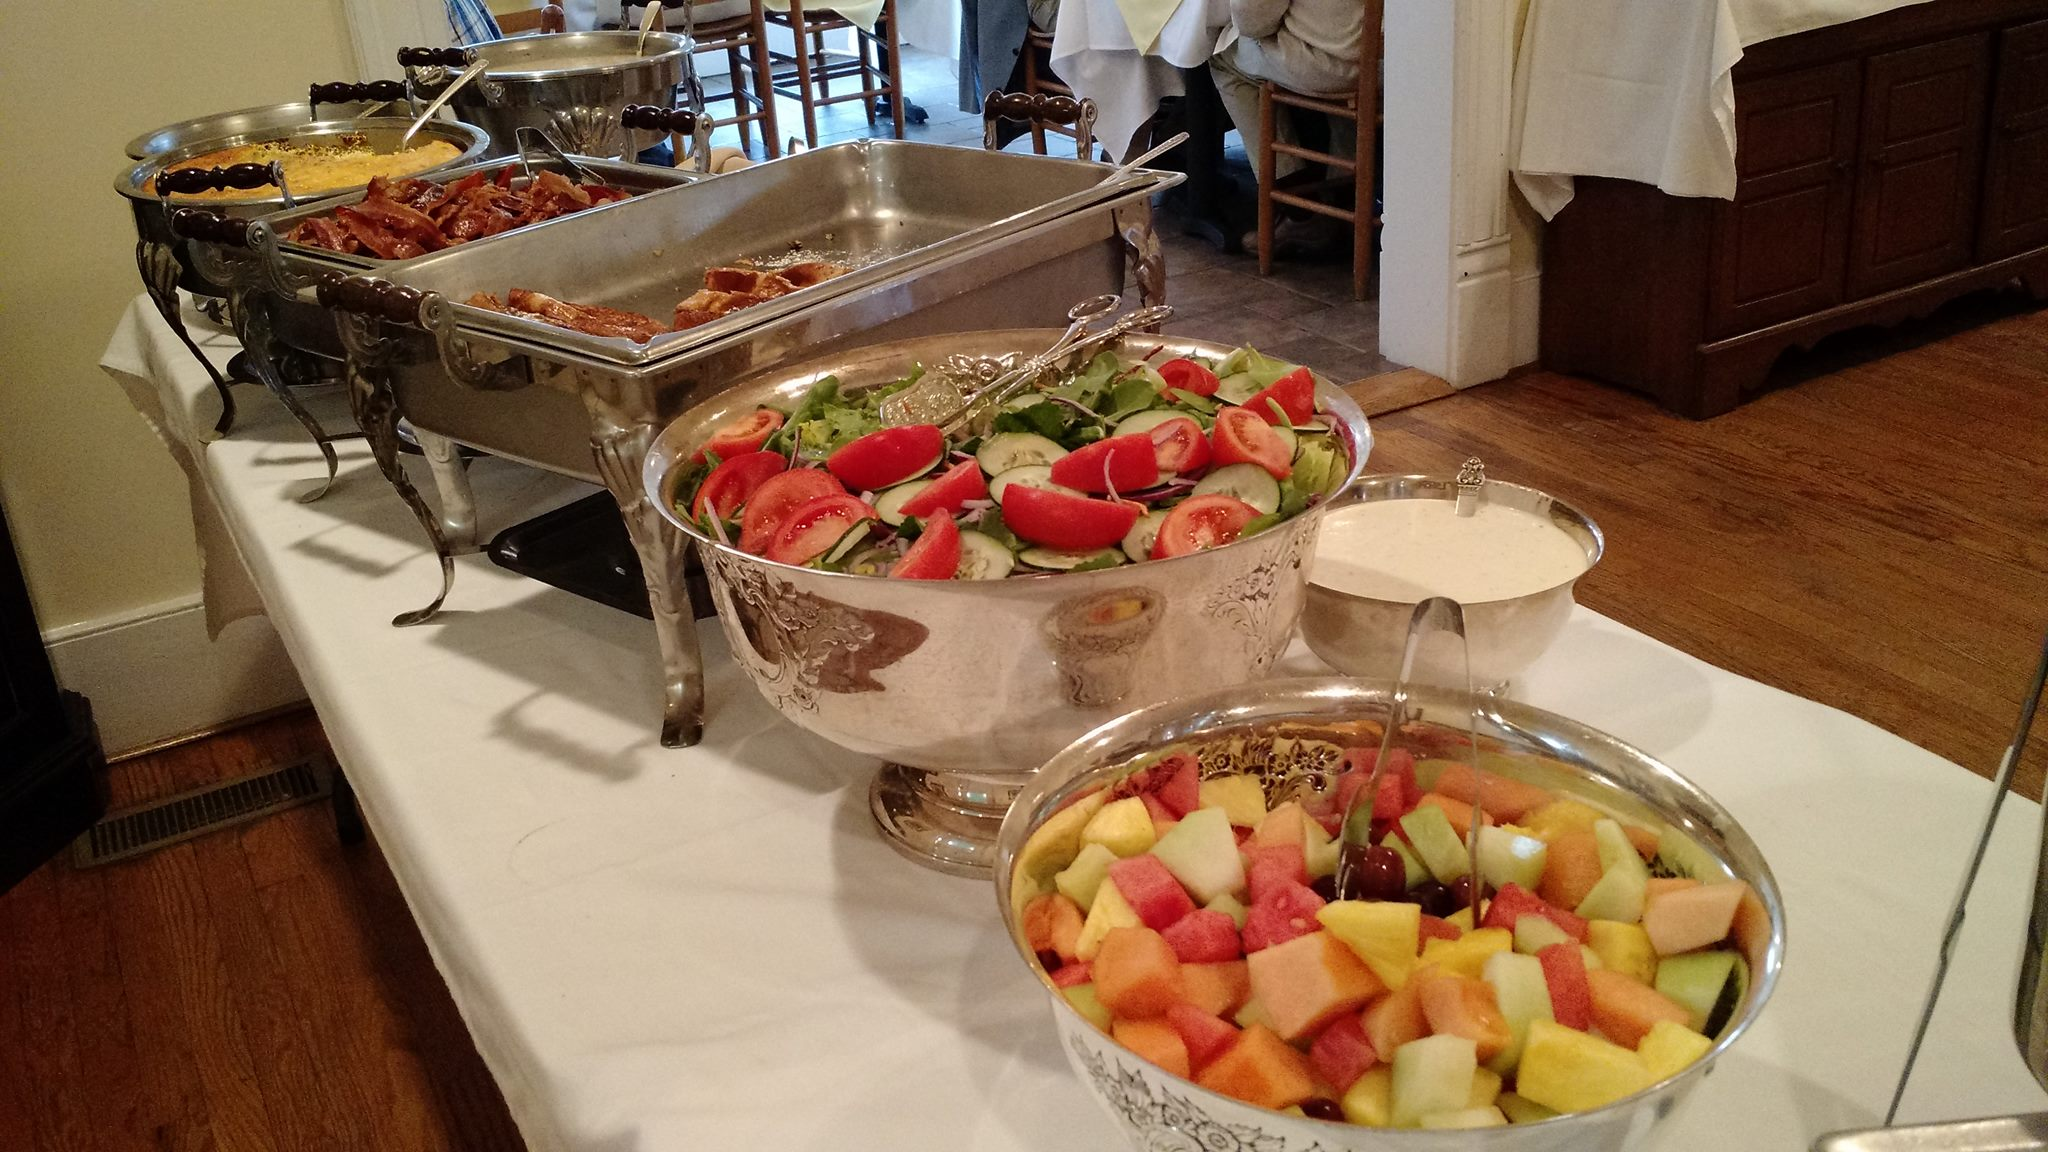 easter buffet @ the babcock house  April 1st at 12pm-3pm  250 Oakleigh Ave Appomattox, VA 24522  Tickets are $32/person, includes tax and tip and are required in order to secure a reservation. These can be purchased in person or over the phone at (434) 352-7532. They will have a seating at 12pm and one at 3pm..